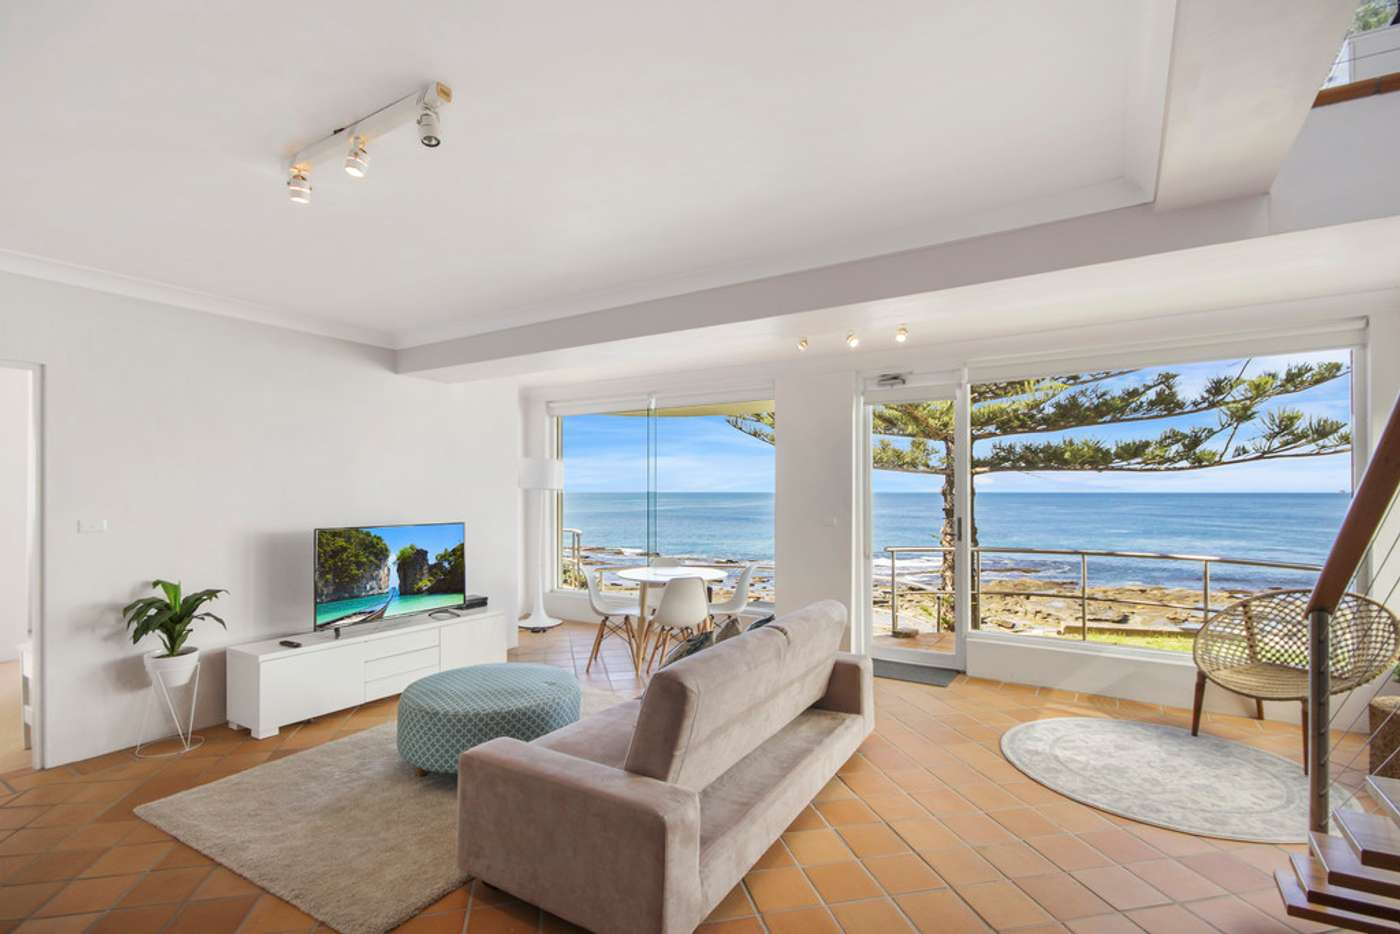 Fifth view of Homely house listing, 116 Ocean Parade, Blue Bay NSW 2261